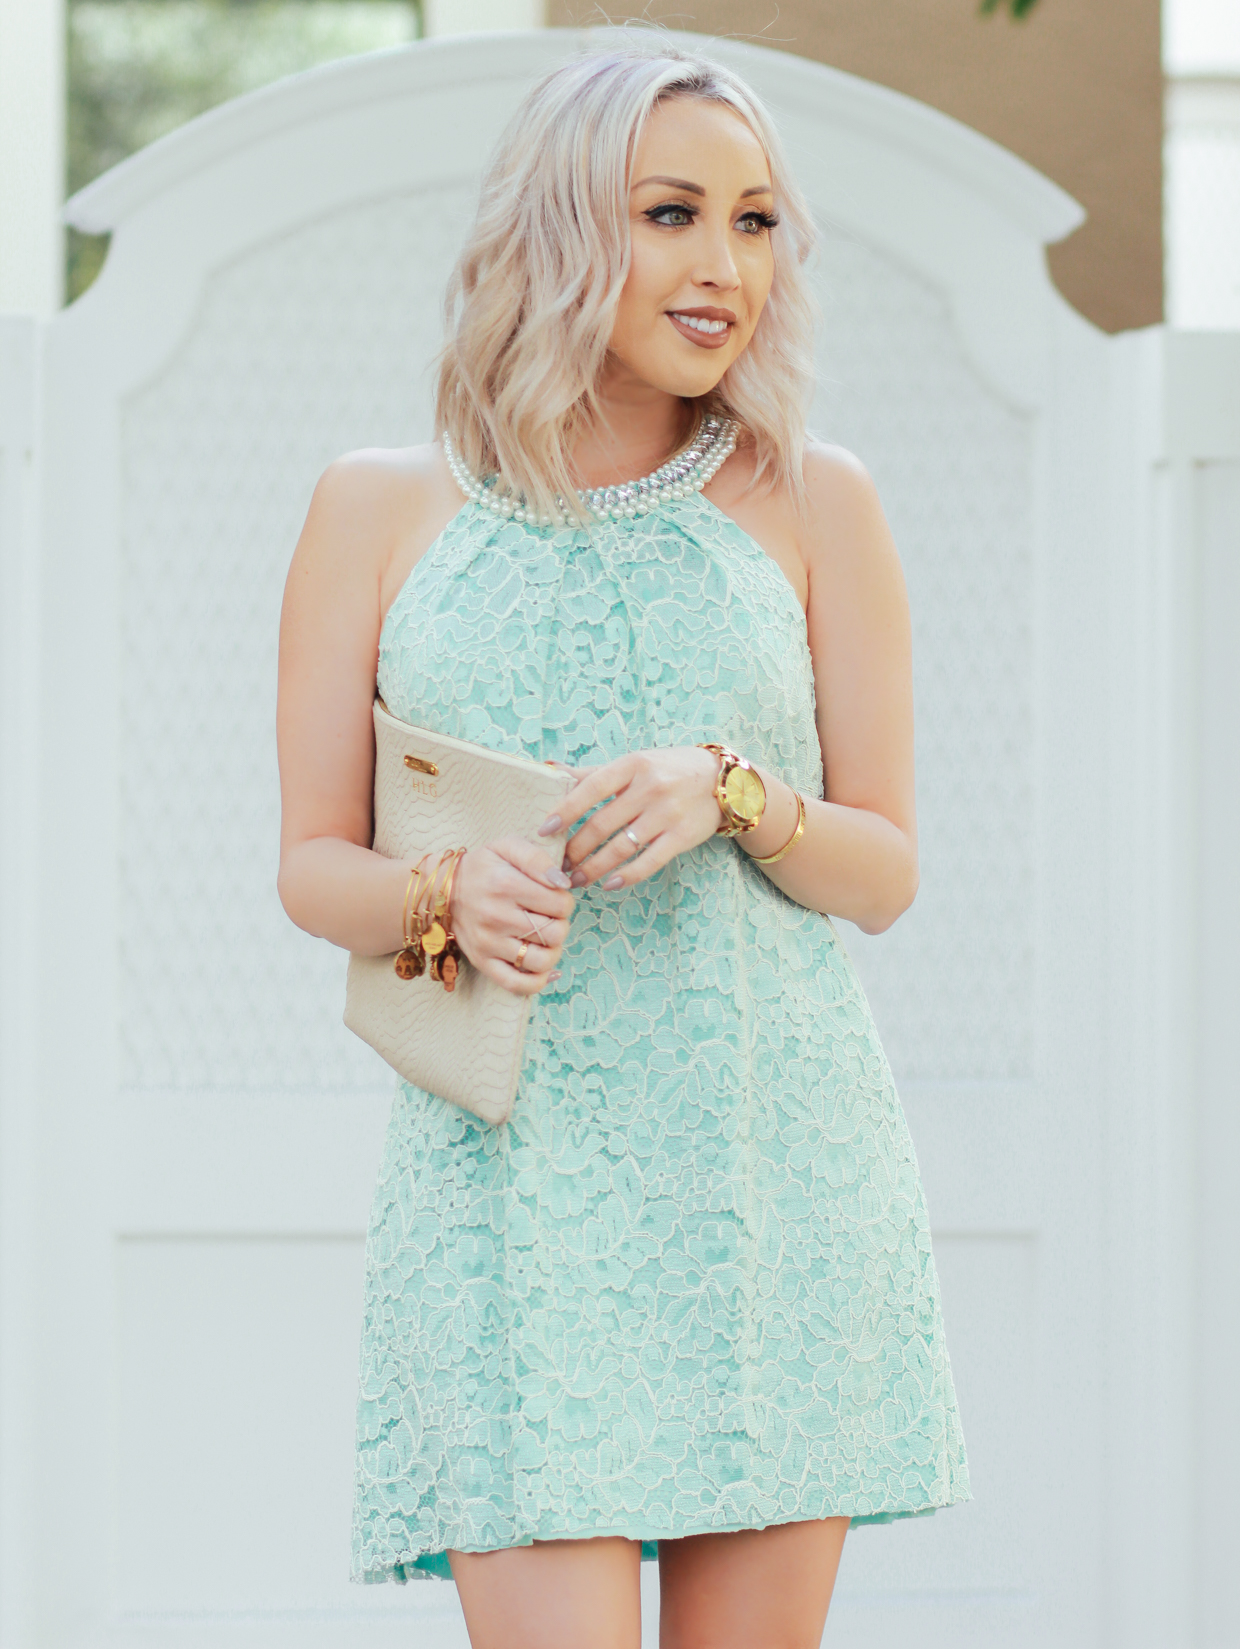 Blondie in the City | Elegant Mint Lace Dress by @maggylondon | Breakfast At Tiffany's Inspired